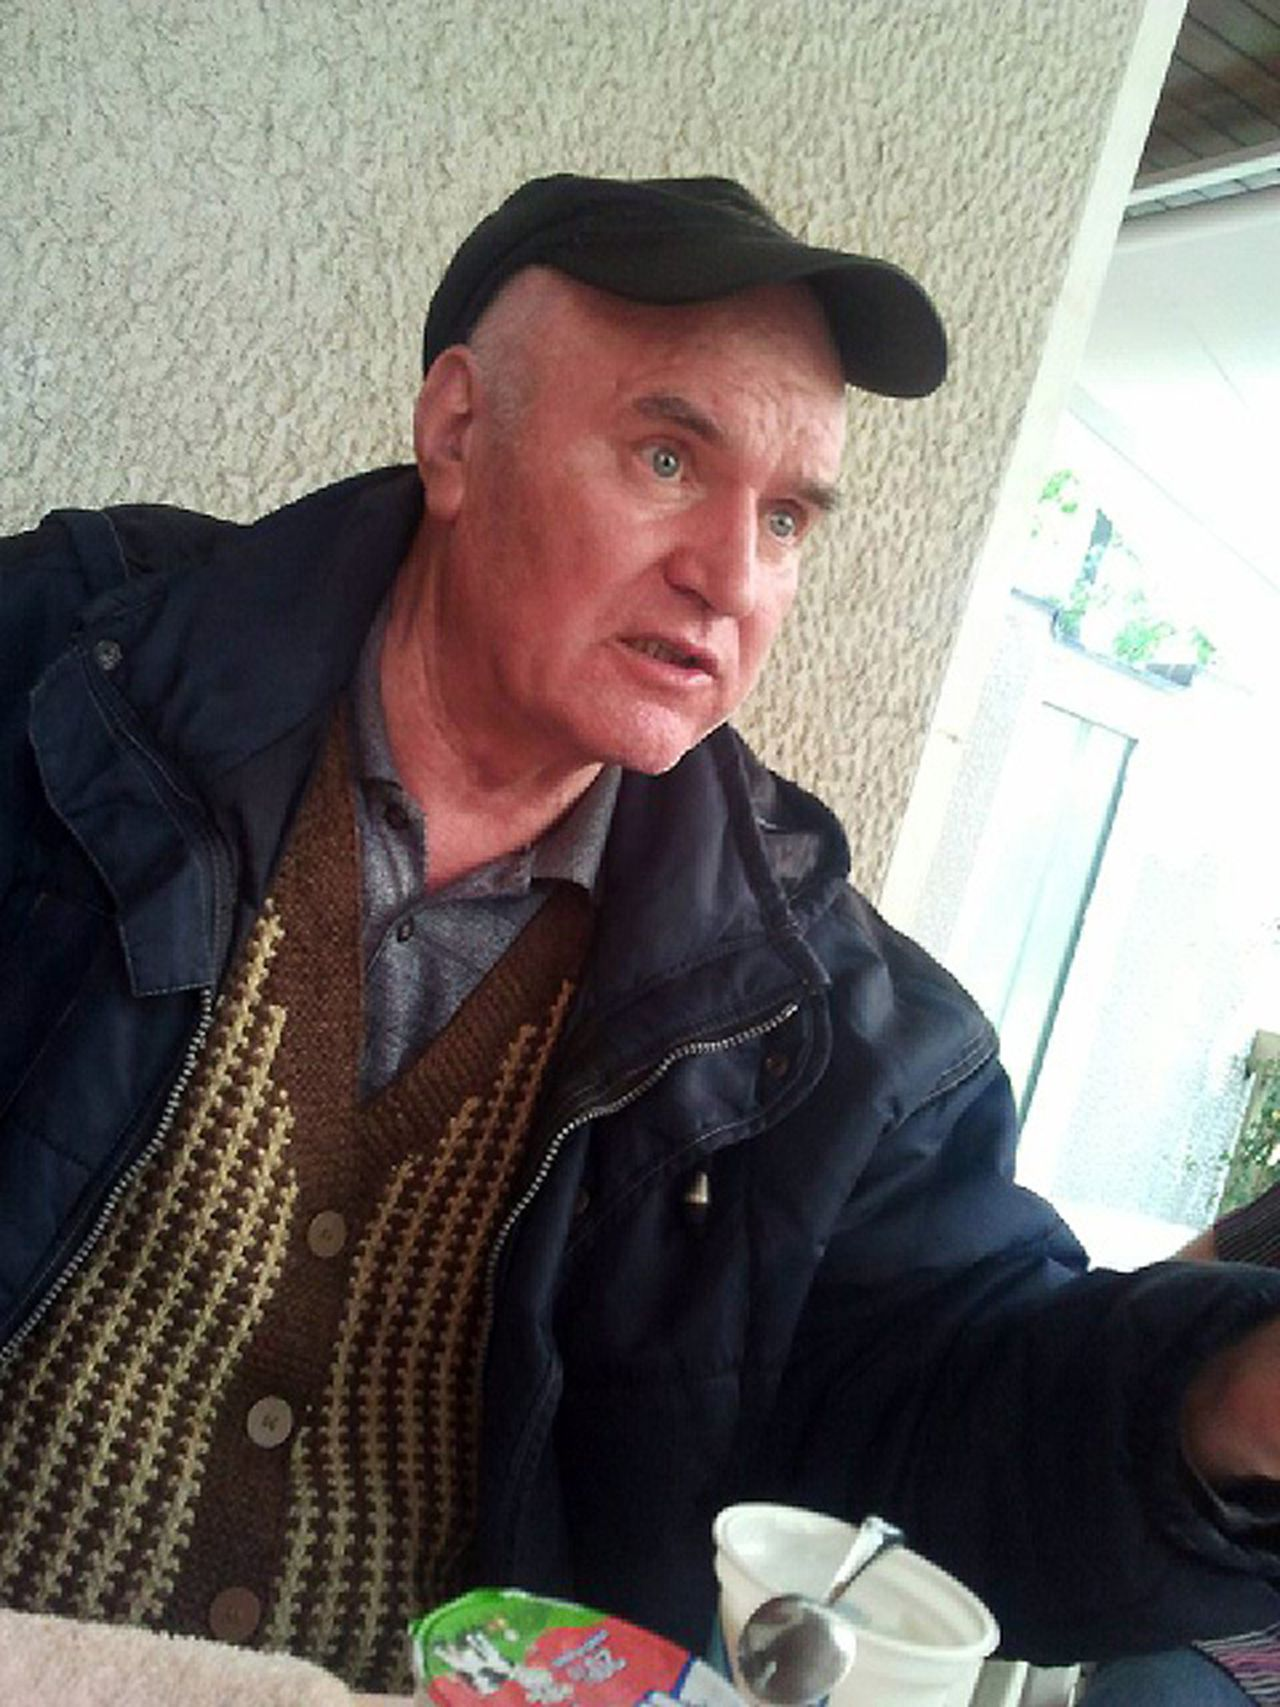 Mladic na arrestatie. Foto Reuters Bosnian Serb wartime general Ratko Mladic is seen in this handout photo taken in Belgrade May 26, 2011, and released to Reuters on May 28, 2011. Mladic is fit enough to face genocide charges in The Hague, a Belgrade court ruled on Friday after the Bosnian Serb wartime general's son said he appeared too frail after more than 15 years on the run. The court said Mladic, arrested on Thursday in a Serbian village, had until Monday to appeal against extradition to the international criminal tribunal in The Hague to be tried for a massacre in Srebrenica and the siege of Sarajevo during Bosnia's 1992-95 war. REUTERS/Press/Handout (SERBIA - Tags: CIVIL UNREST CRIME LAW POLITICS IMAGES OF THE DAY) FOR EDITORIAL USE ONLY. NOT FOR SALE FOR MARKETING OR ADVERTISING CAMPAIGNS. THIS IMAGE HAS BEEN SUPPLIED BY A THIRD PARTY. IT IS DISTRIBUTED, EXACTLY AS RECEIVED BY REUTERS, AS A SERVICE TO CLIENTS